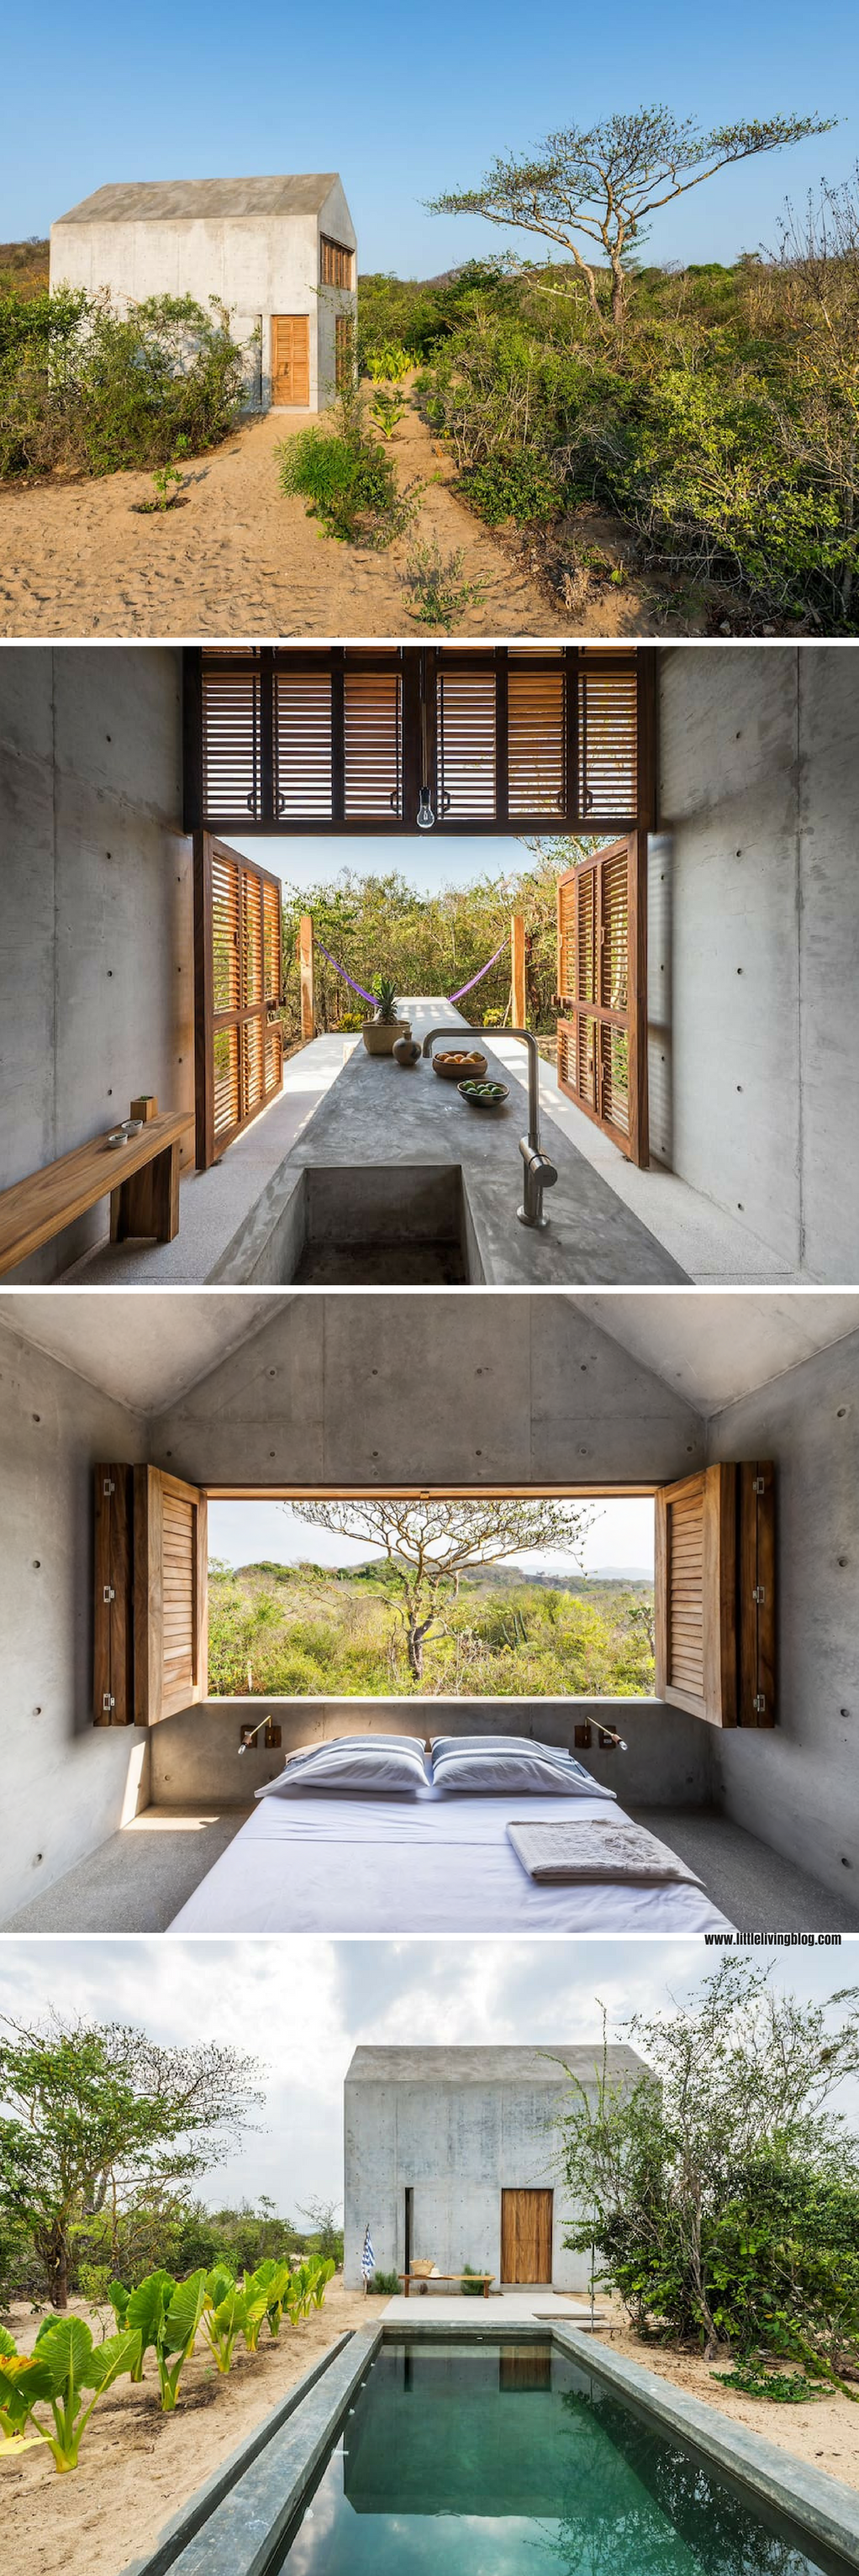 The Tiny Casa A Minimal Low Impact Cabin In The Town Of